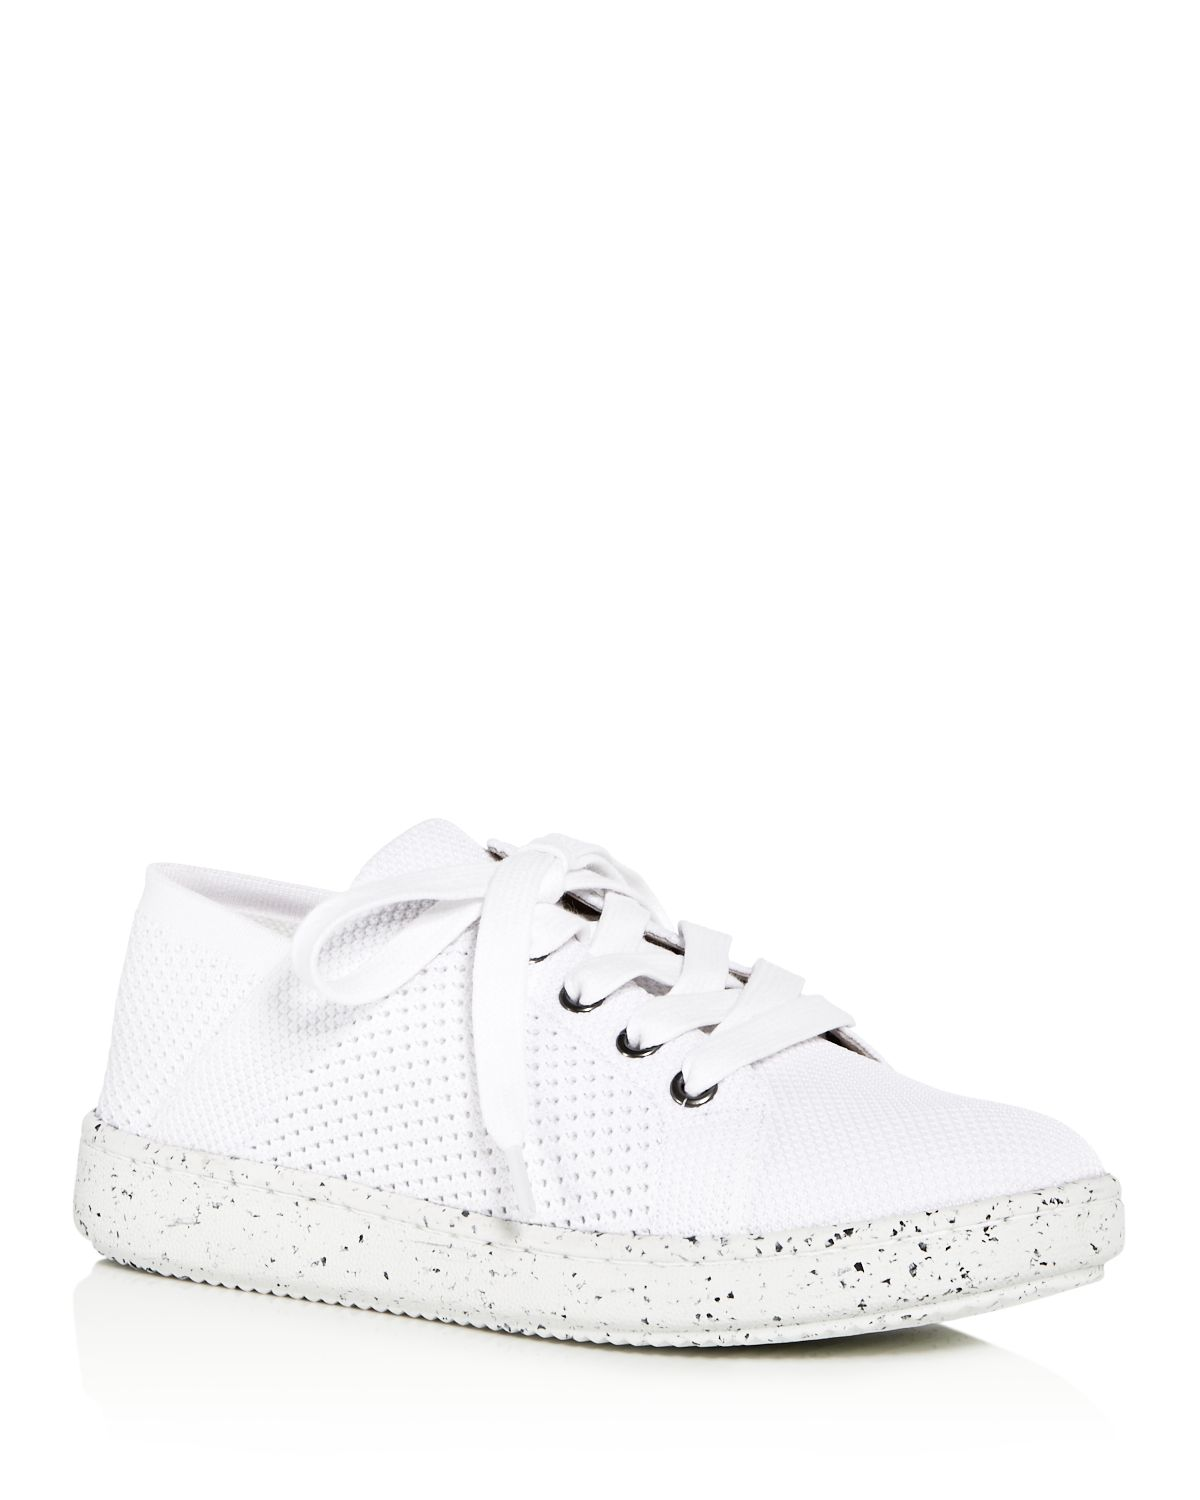 Eileen Fisher Women's Clifton Knit Lace Up Sneakers